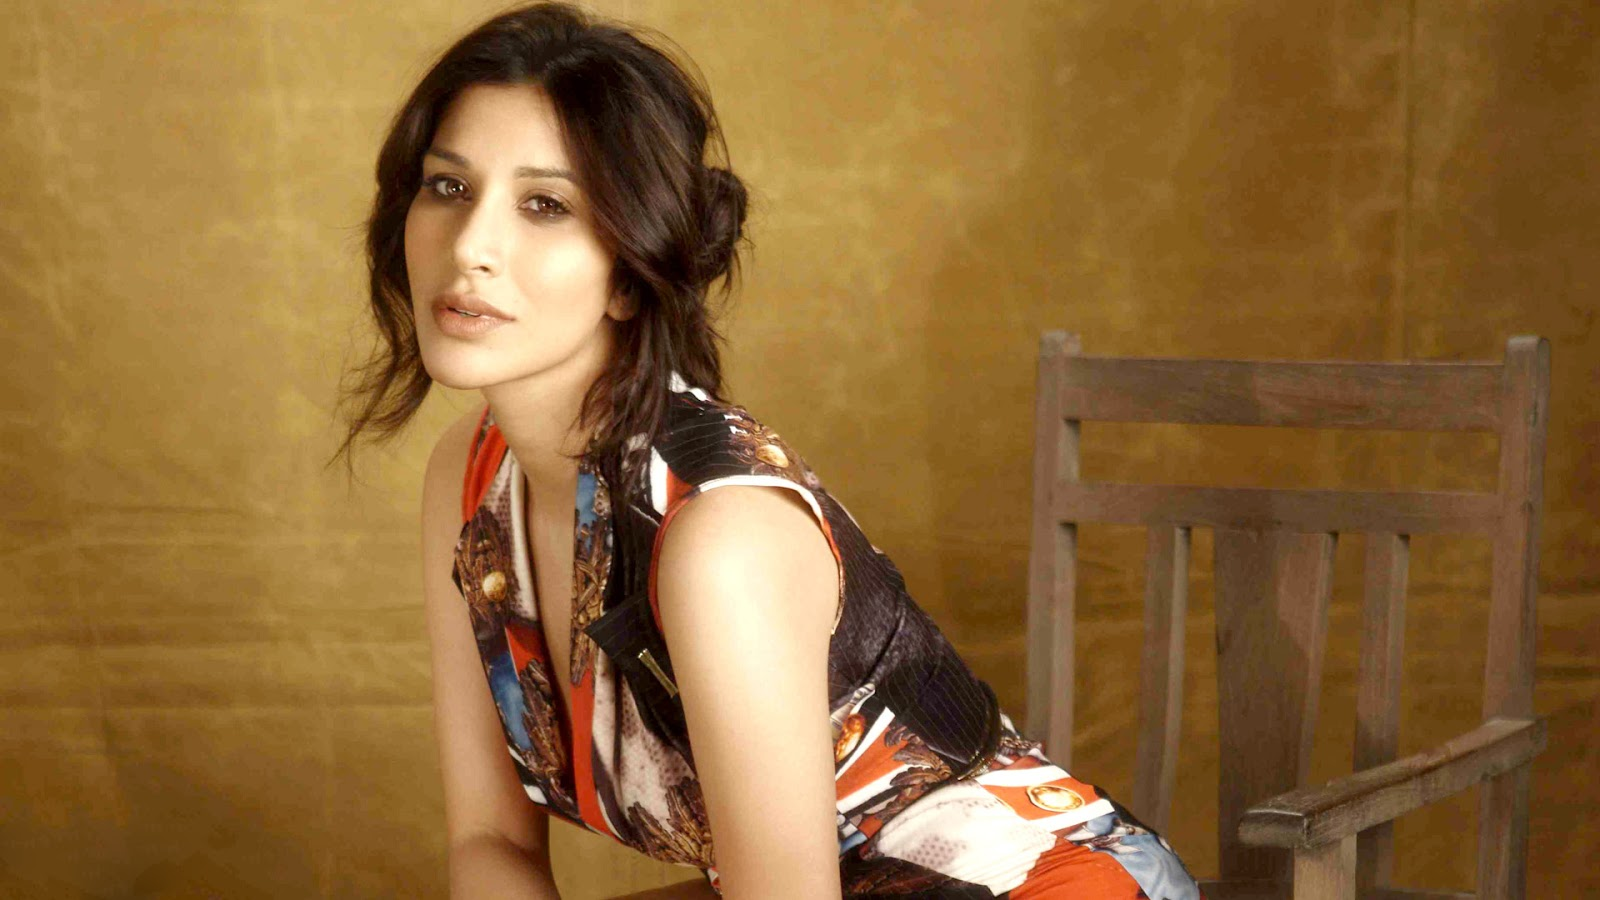 download sophie chaudhary latest - photo #25